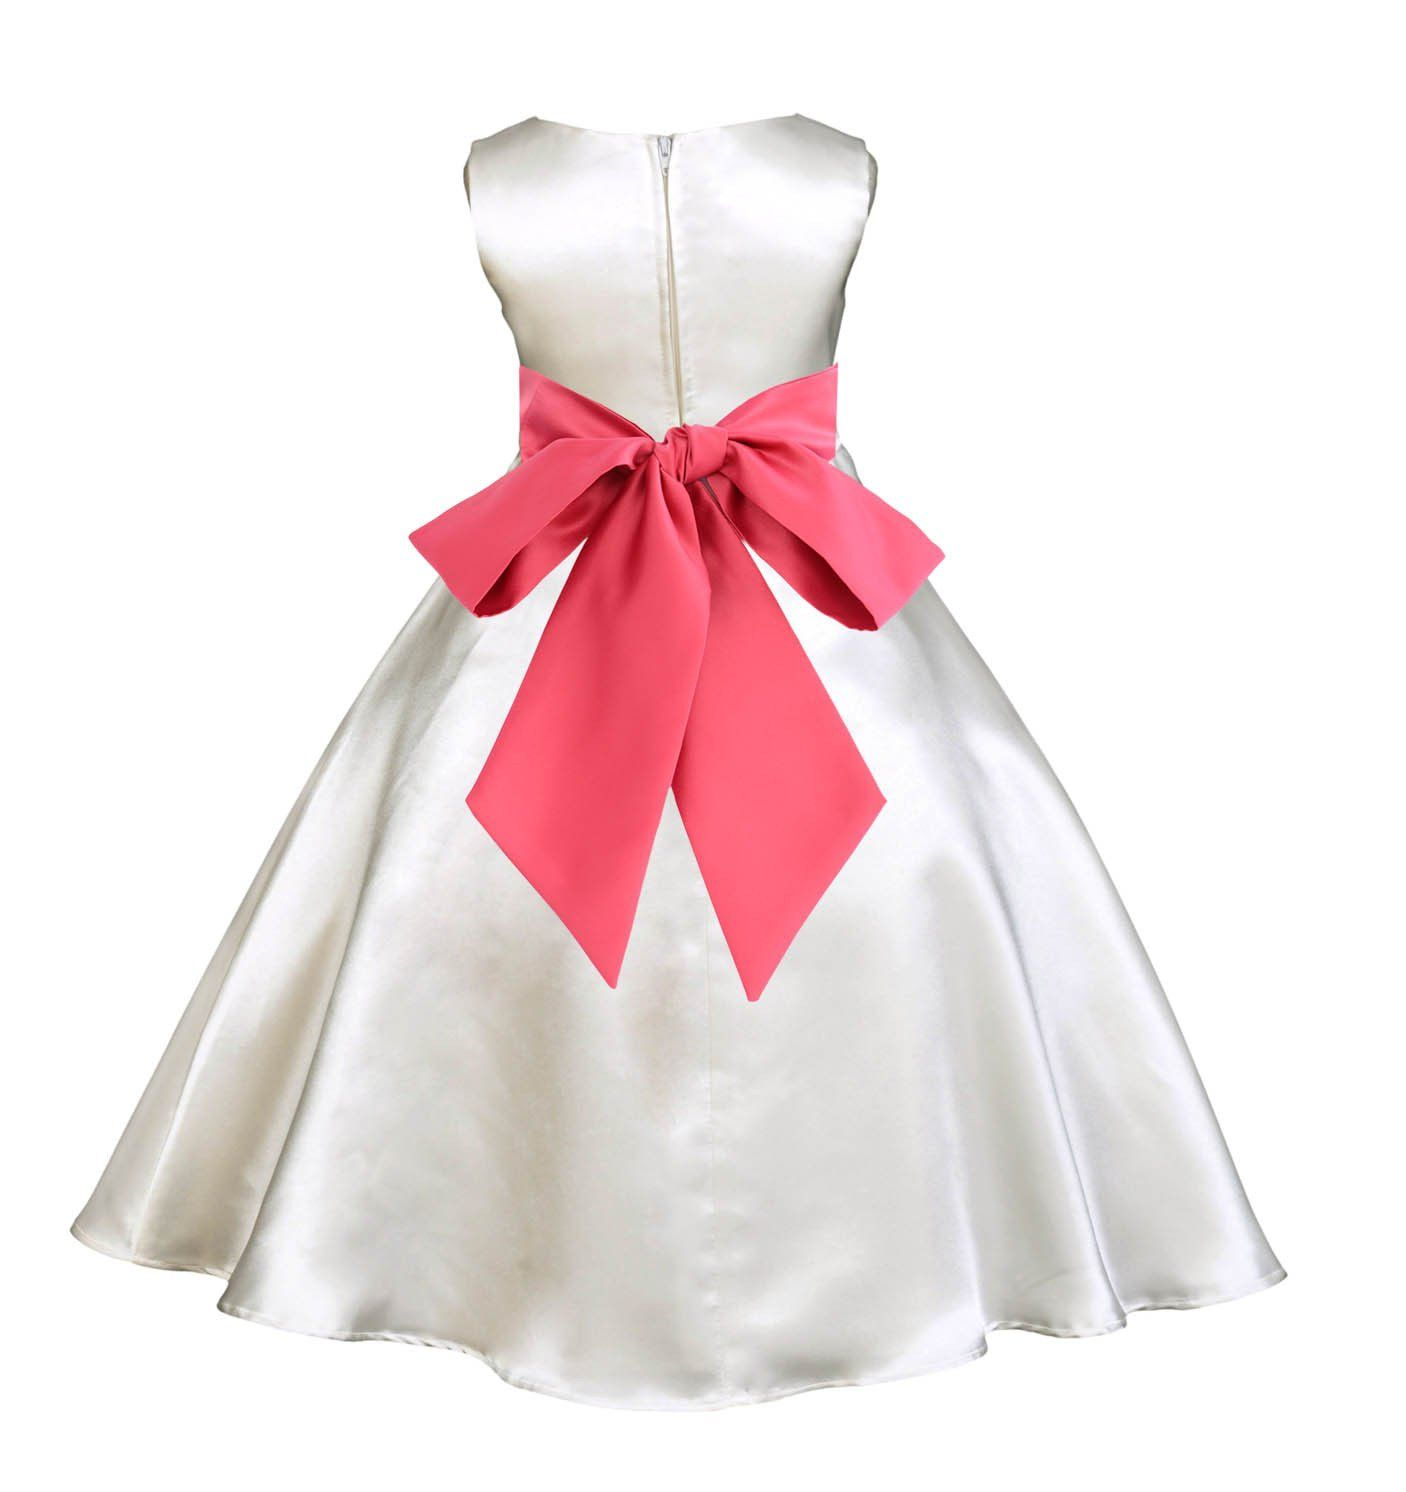 Ivory aline satin flower girl dress wedding pageant first communion